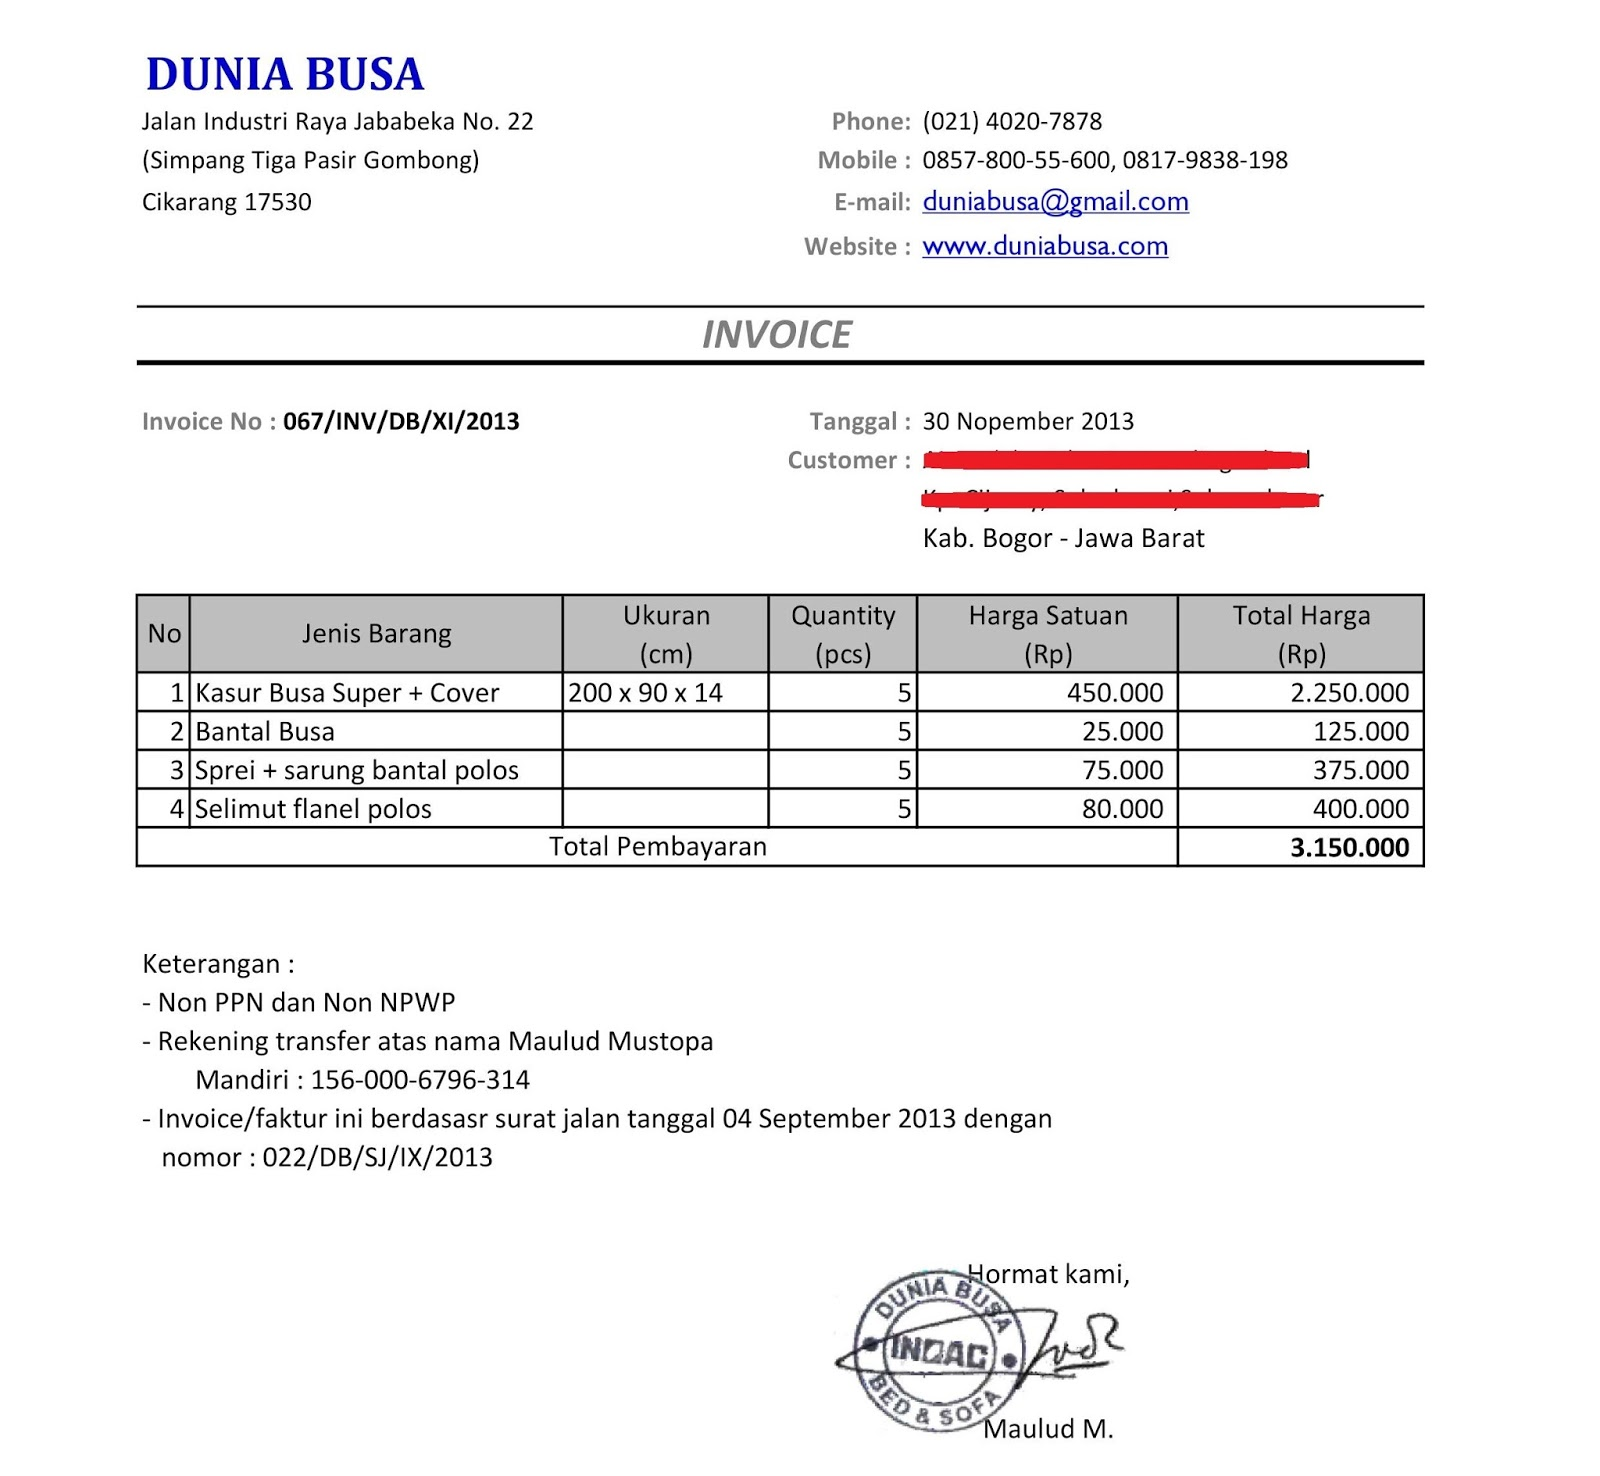 Pigbrotherus  Unique Free Invoice Online  Create Invoice Online  Invoice Template  With Magnificent Contoh Format Invoice Atau Surat Tagihan  Brankas Arsip  Free Invoice Online With Divine Invoice Price Toyota Highlander Also Proforma Invoice Customs In Addition Word Templates For Invoices And Word  Invoice Template As Well As How Do You Find The Invoice Price Of A Car Additionally Honda Fit Invoice From Sklepco With Pigbrotherus  Magnificent Free Invoice Online  Create Invoice Online  Invoice Template  With Divine Contoh Format Invoice Atau Surat Tagihan  Brankas Arsip  Free Invoice Online And Unique Invoice Price Toyota Highlander Also Proforma Invoice Customs In Addition Word Templates For Invoices From Sklepco